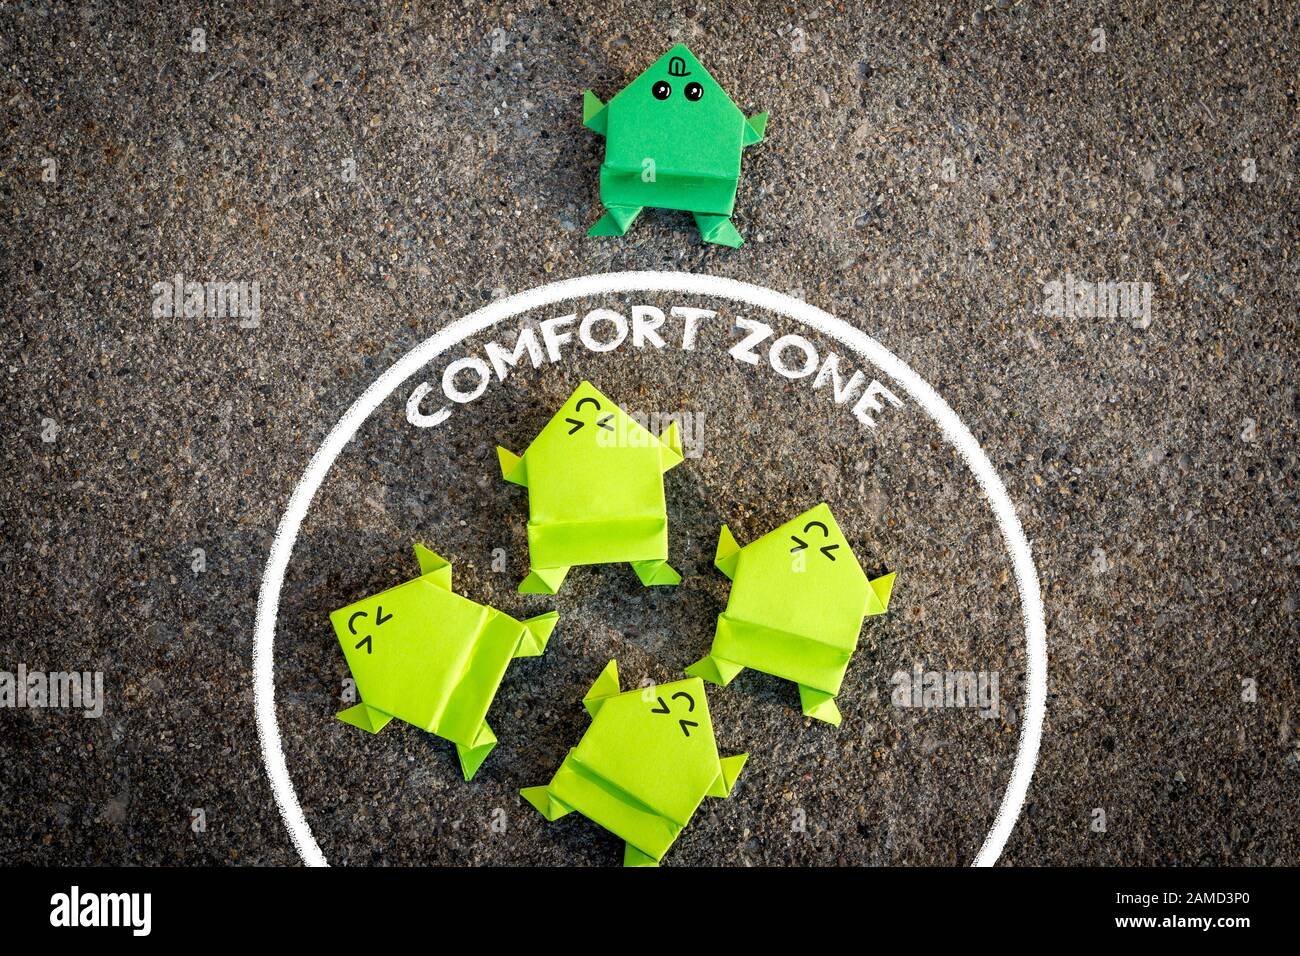 Exit from the comfort zone concept Stock Photo